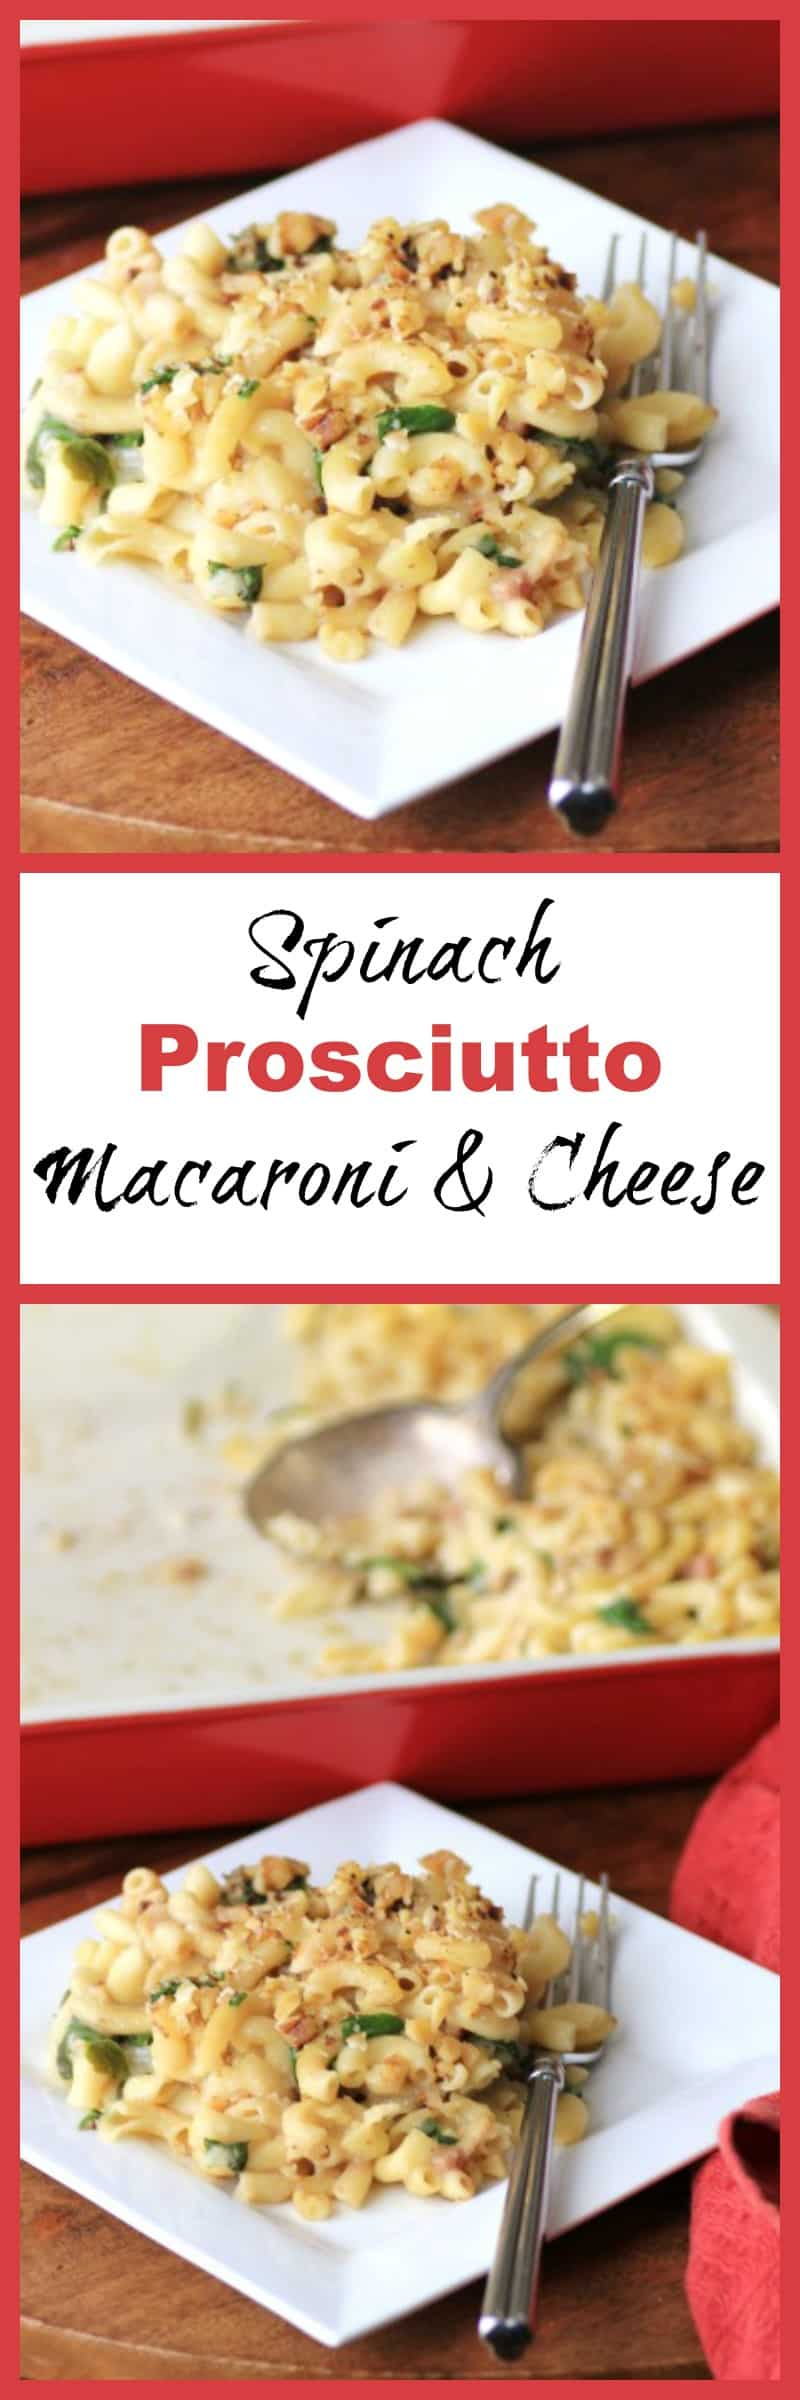 MWM Spinach Prosciutto Macaroni and Cheese